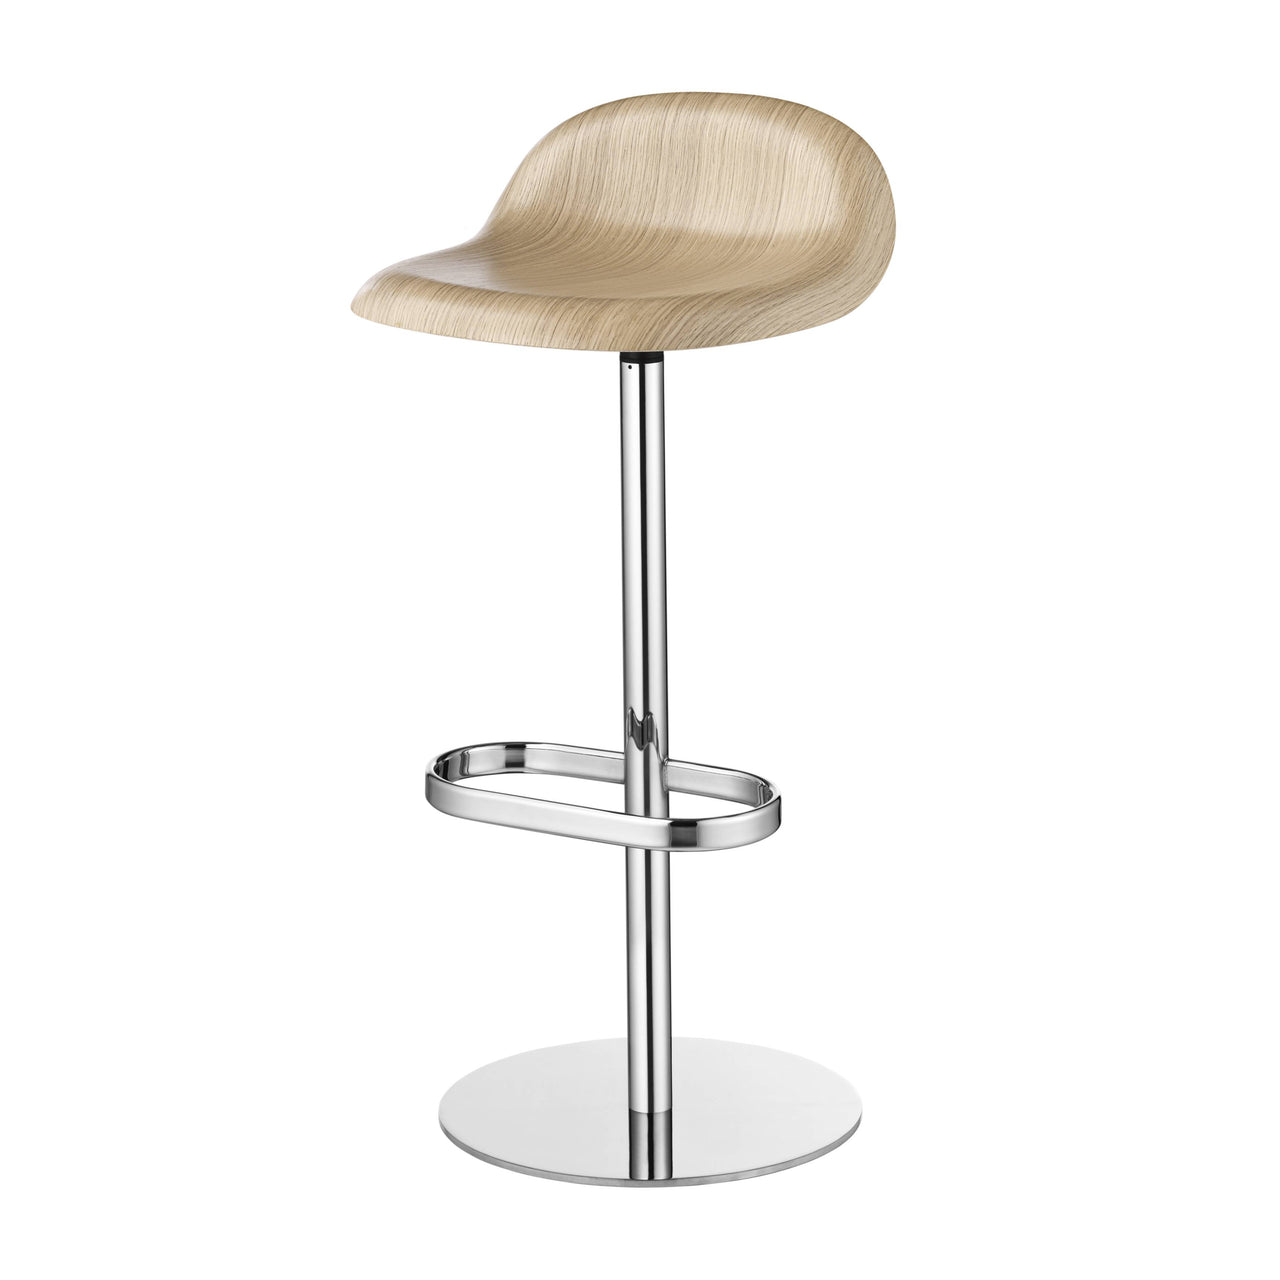 3D Bar Stool: Swivel Base + Oak